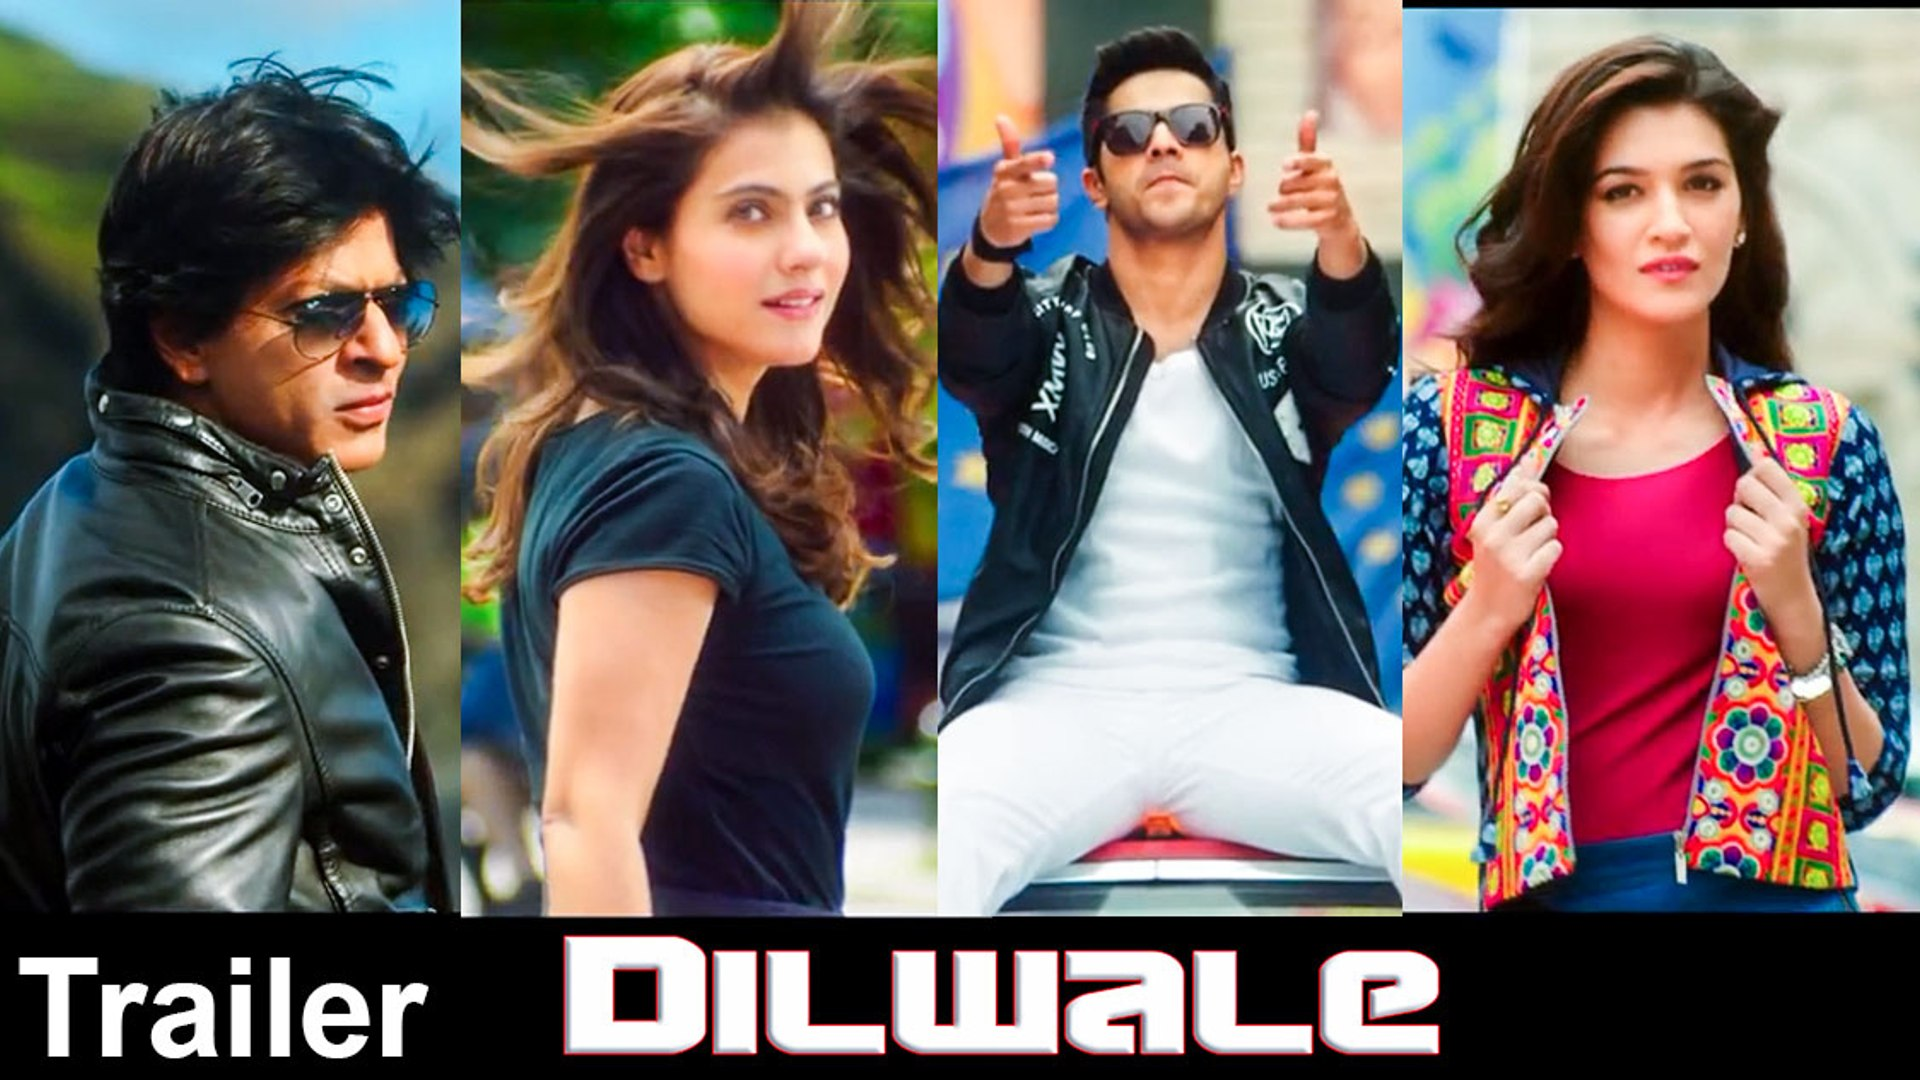 Dilwale 2015 Hindi Movie Official Trailer Shah Rukh Khan, Kajol, Varun  Dhawan, Kriti Sanon